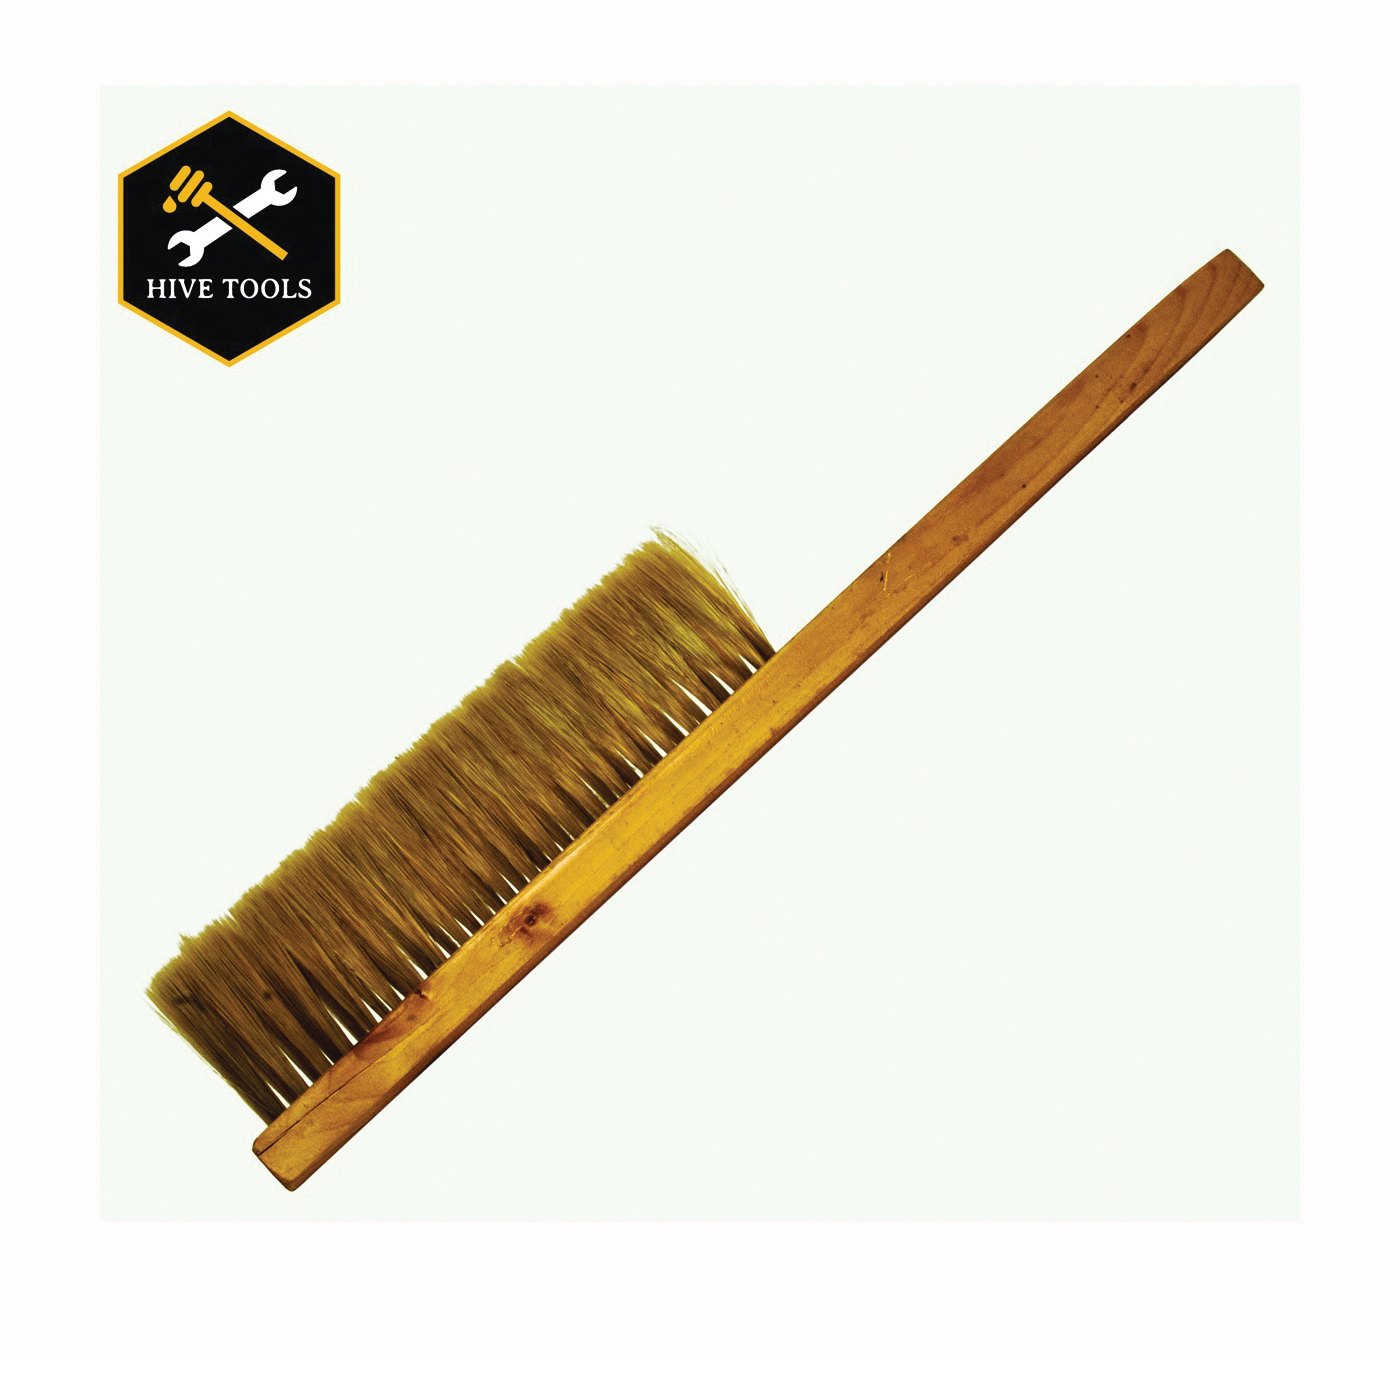 Picture of HARVEST LANE HONEY TOOL-102 Bee Brush, 15 in L, Wood